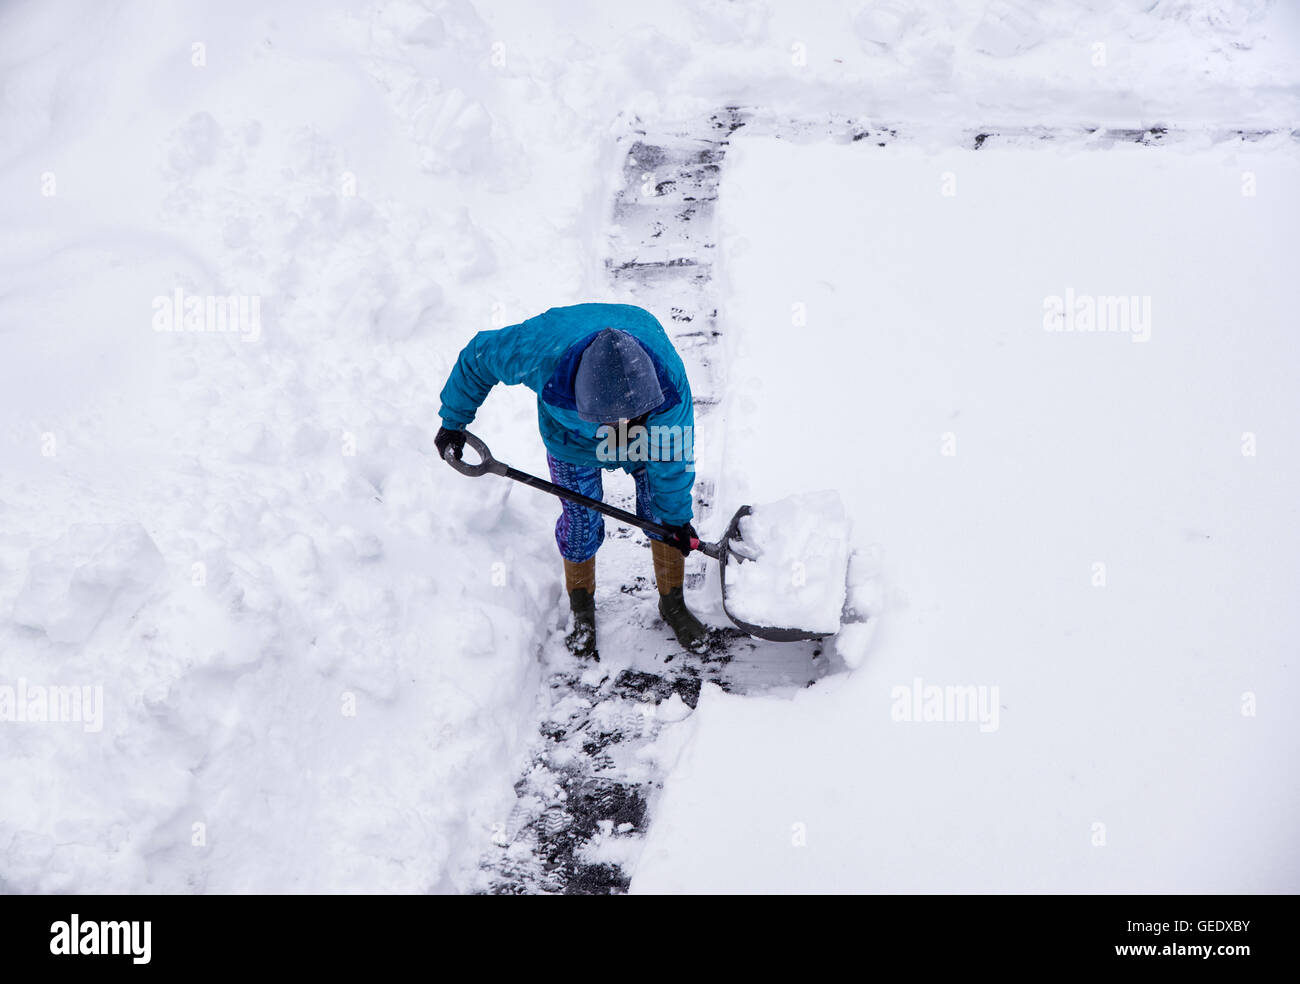 Adult shoveling snow after winter storm. - Stock Image